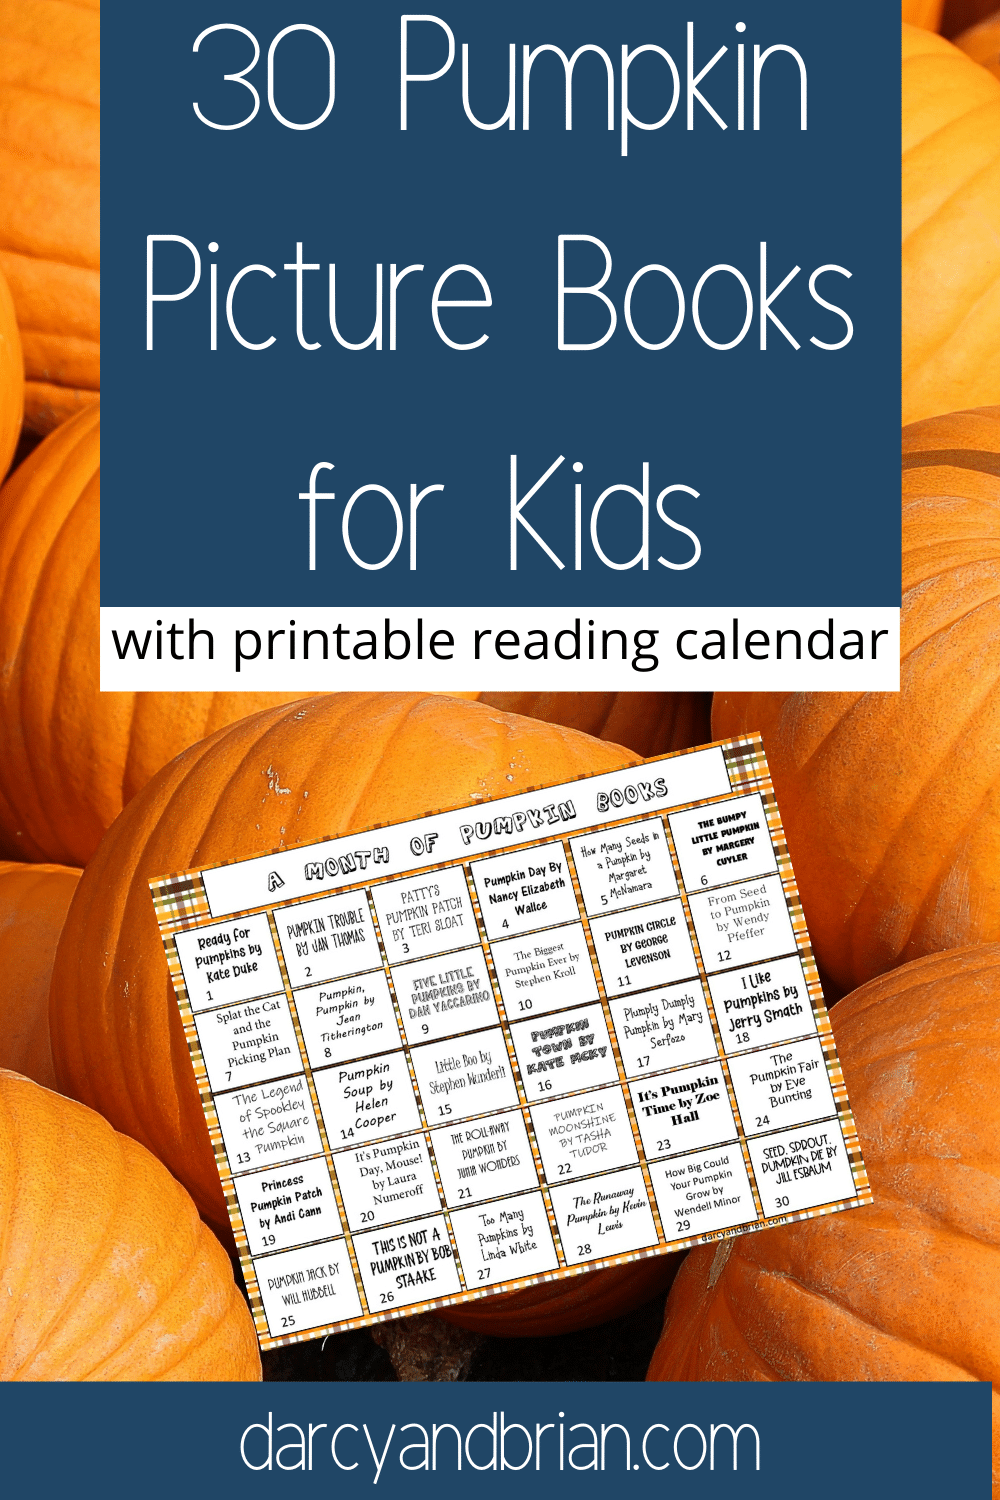 White text in dark blue square says 30 Pumpkin Picture Books for Kids. Preview image of printable calendar all on a background image of a pile of pumpkins.